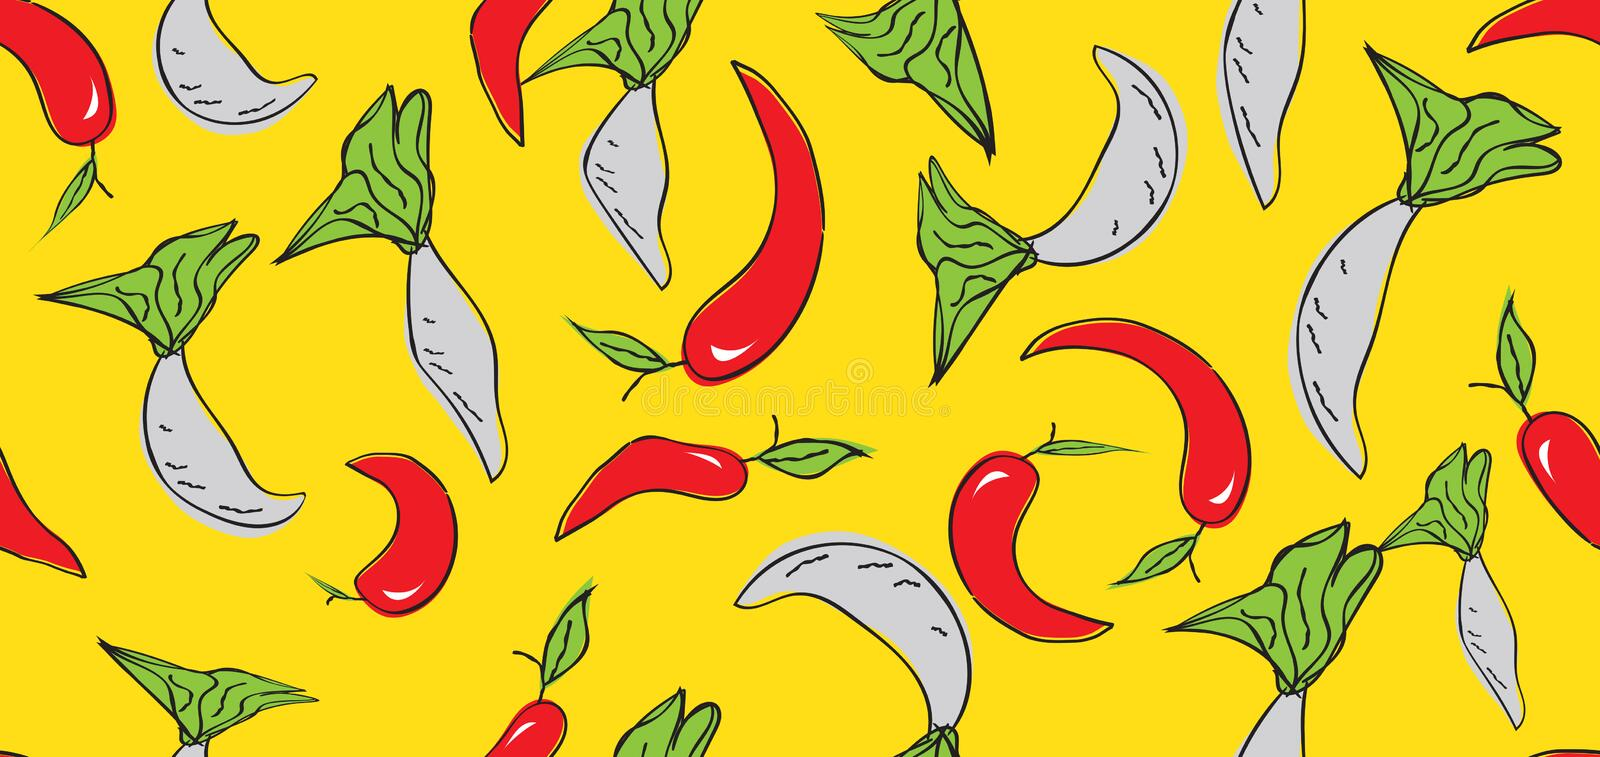 Vegetables seamless pattern, Vegetables banner template vector, web banner, web page, chili peppers, radish, cover, Healthy food. Vegetables seamless pattern vector illustration